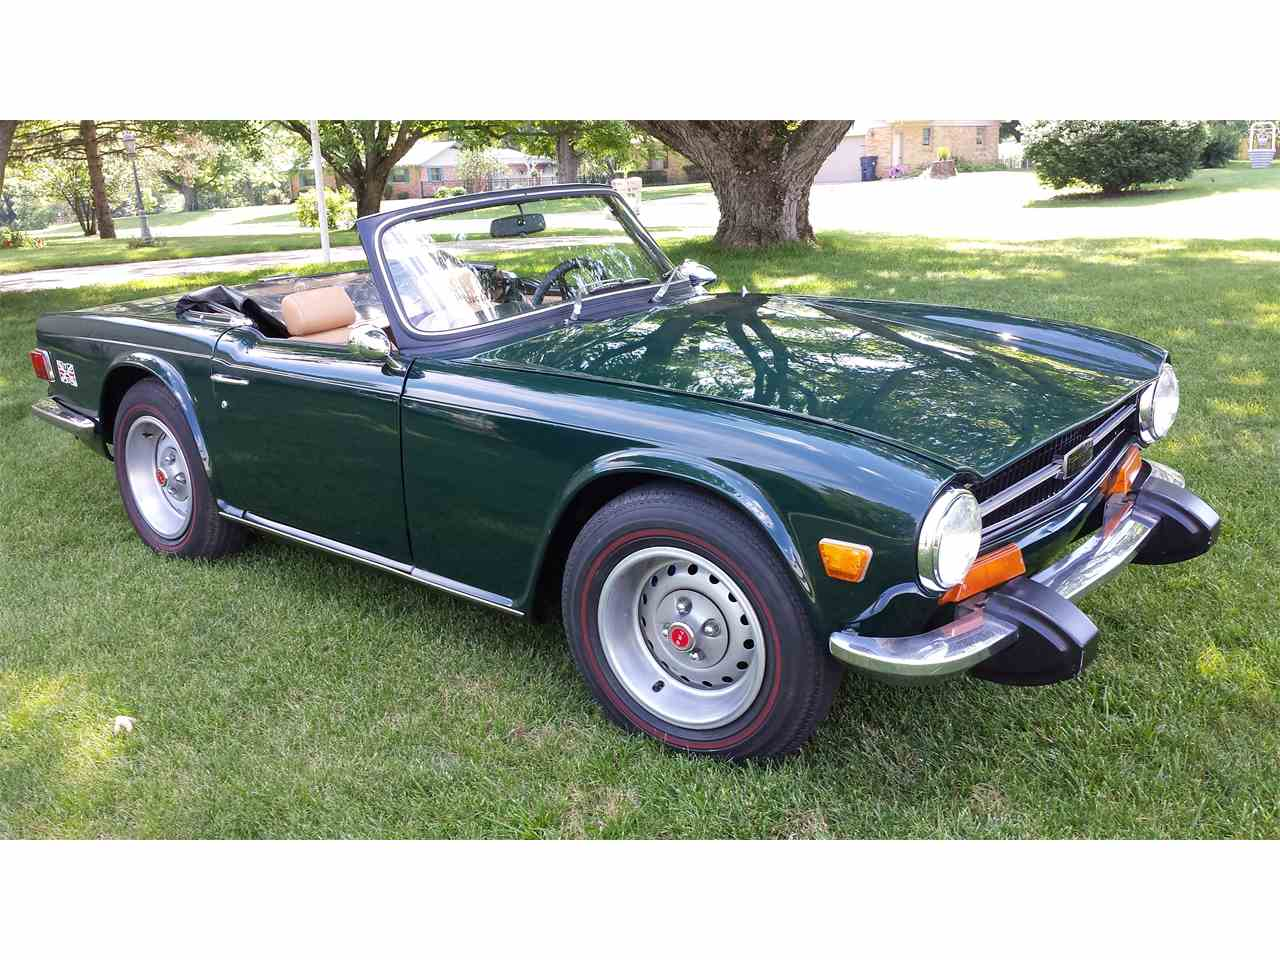 Large Picture of '74 Triumph TR6 Offered by a Private Seller - LWFI